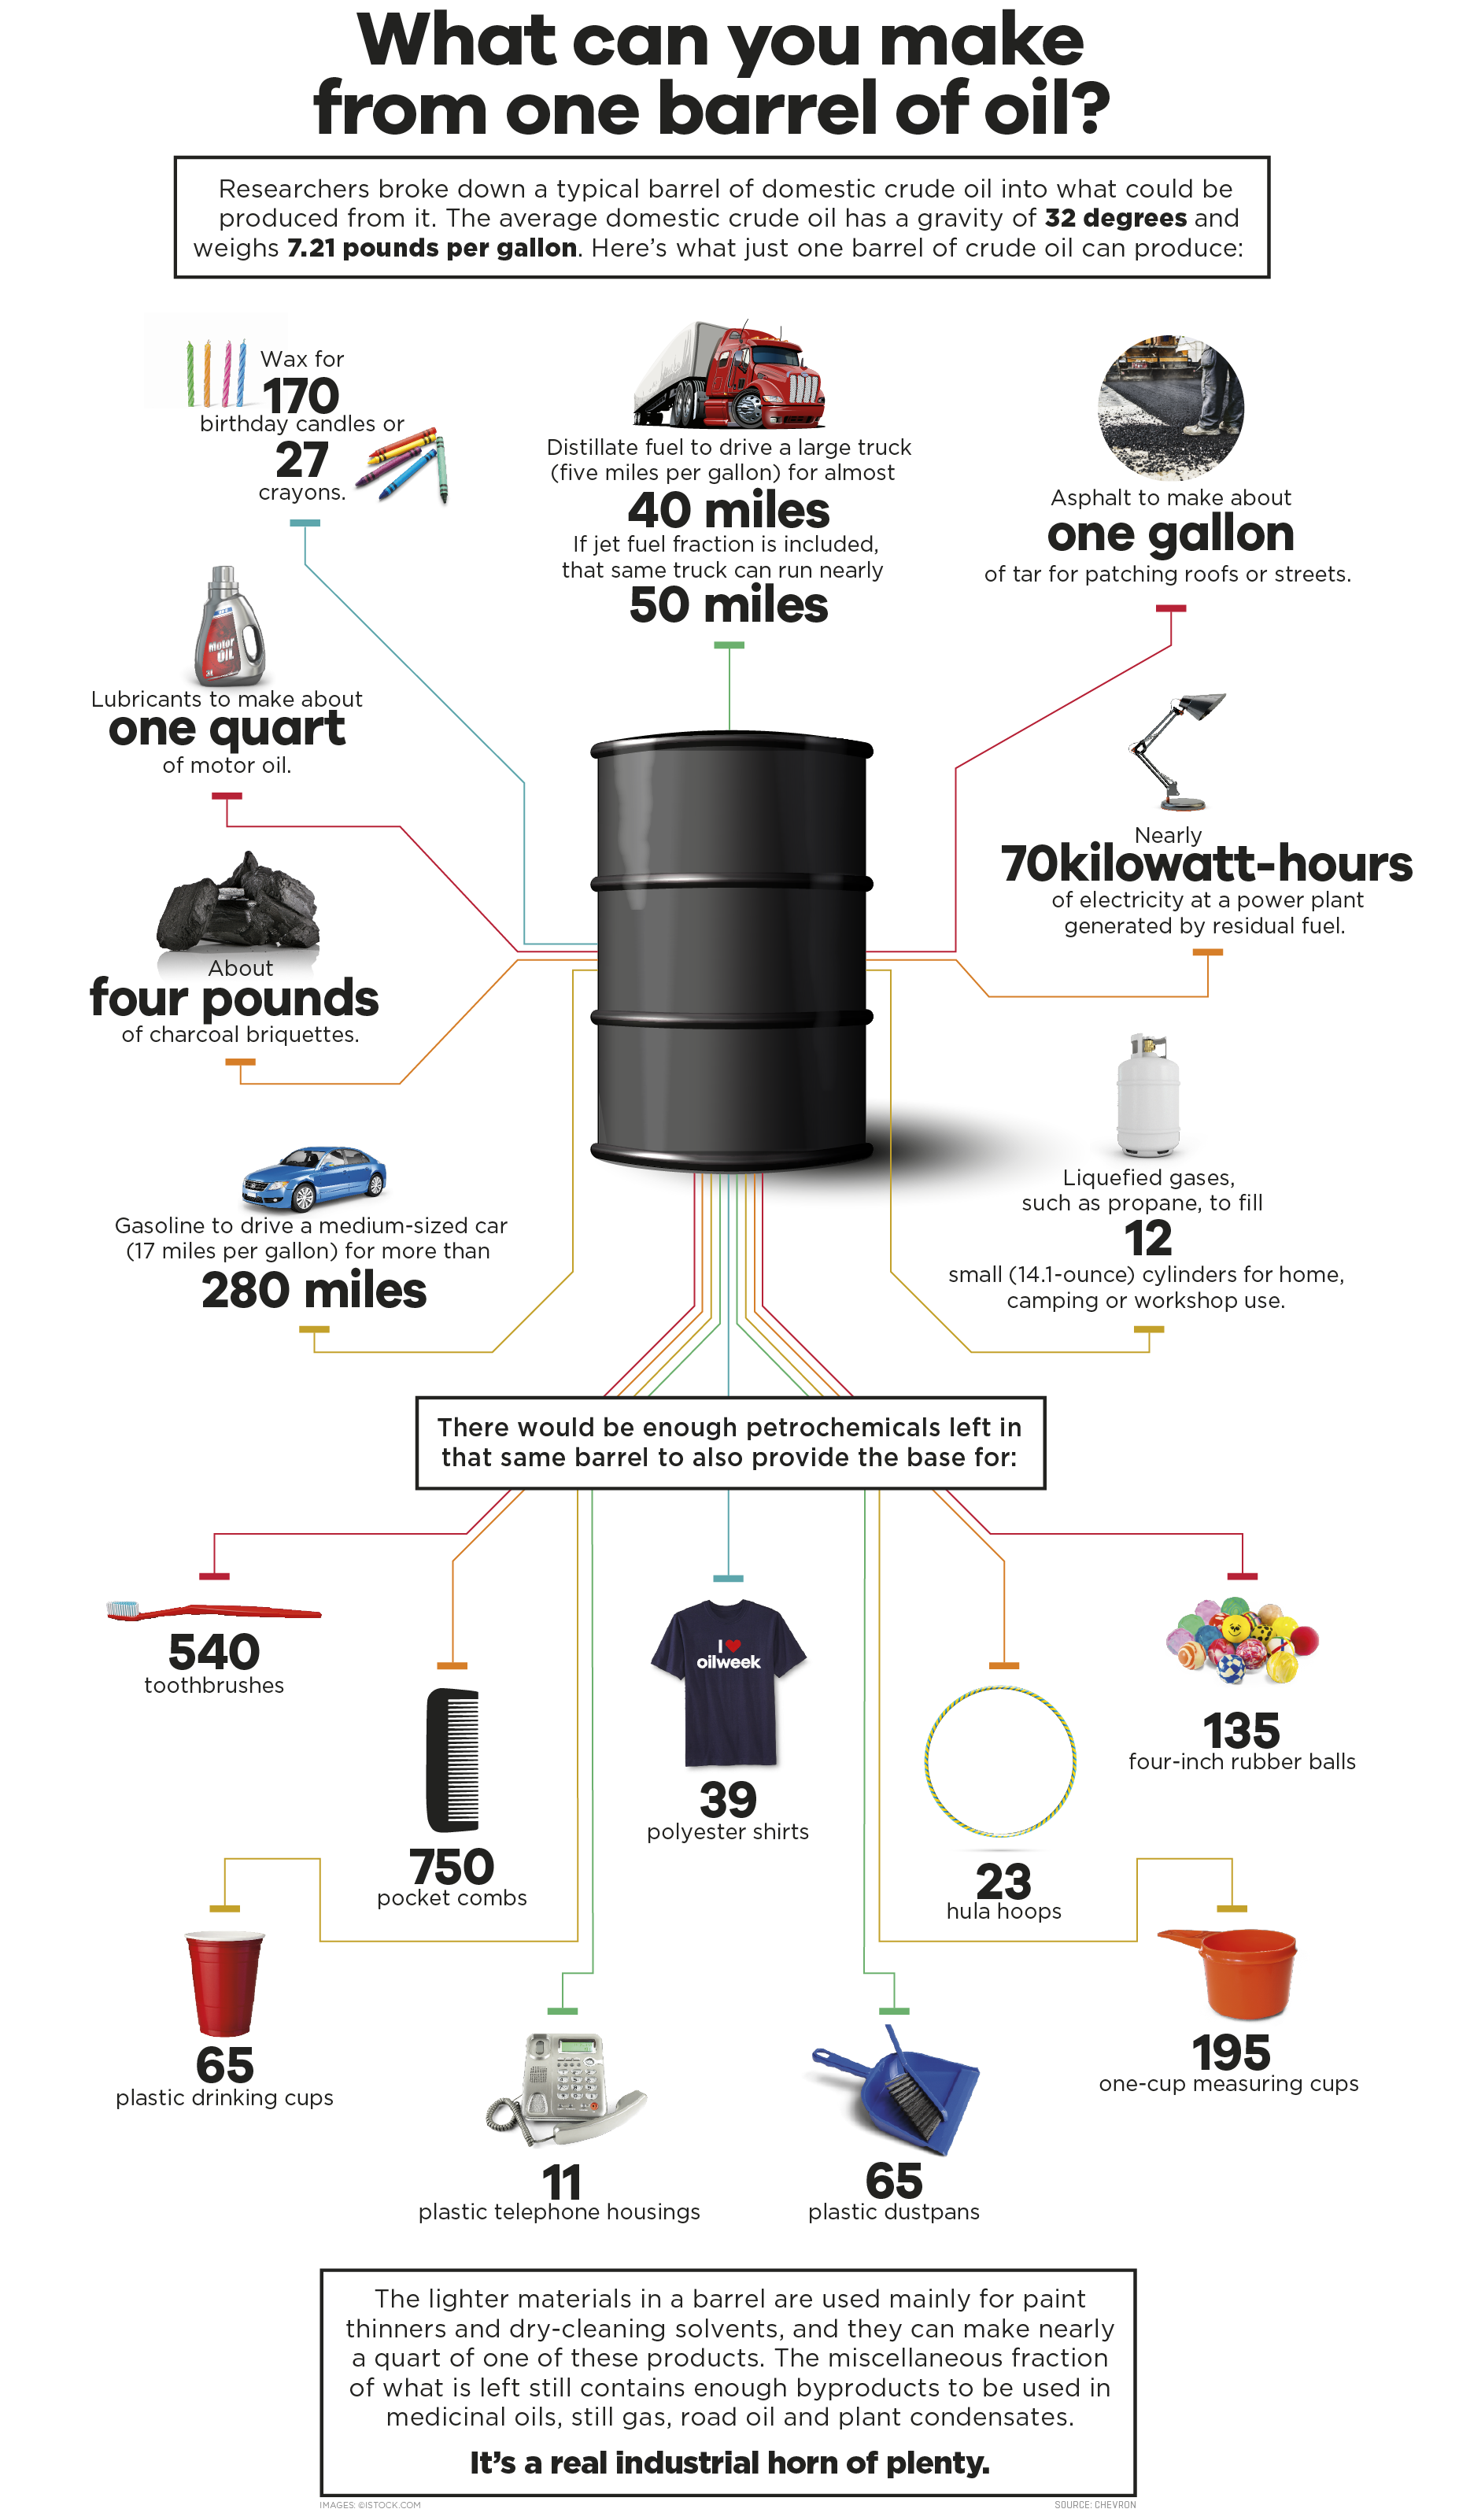 What Can Be Made from One Barrel of Oil?